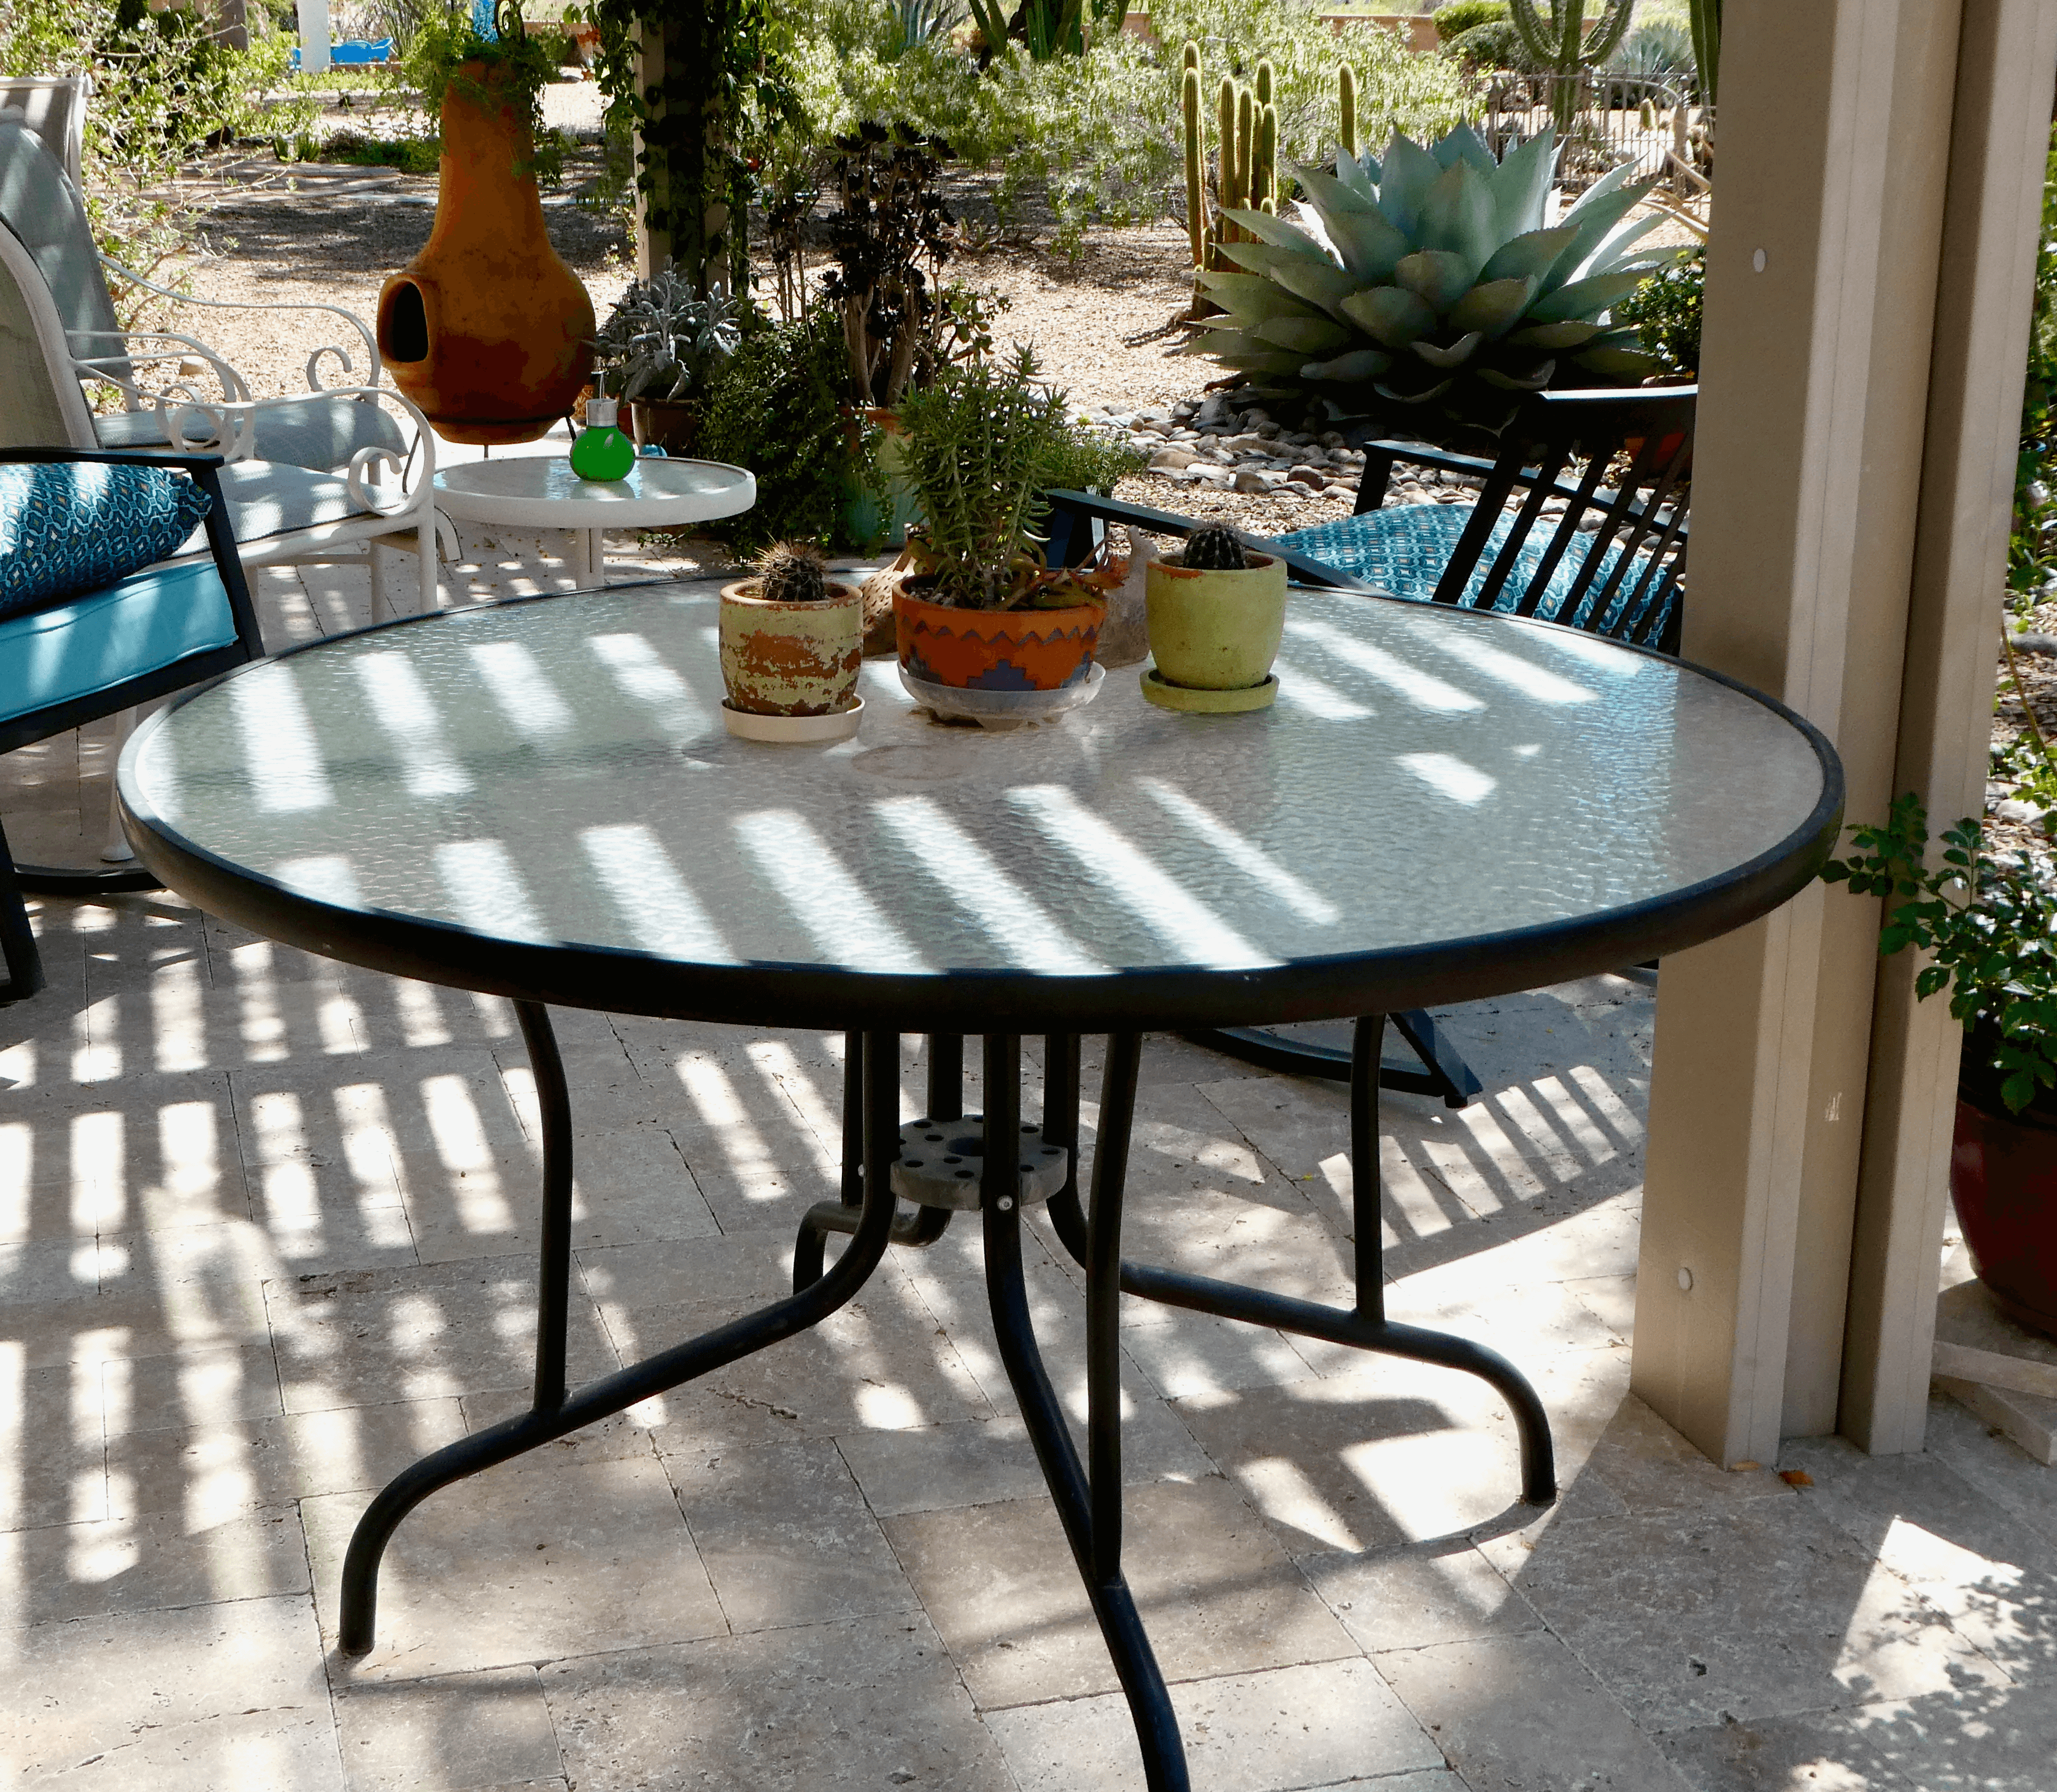 48″ Round Patio Table with Glass Top